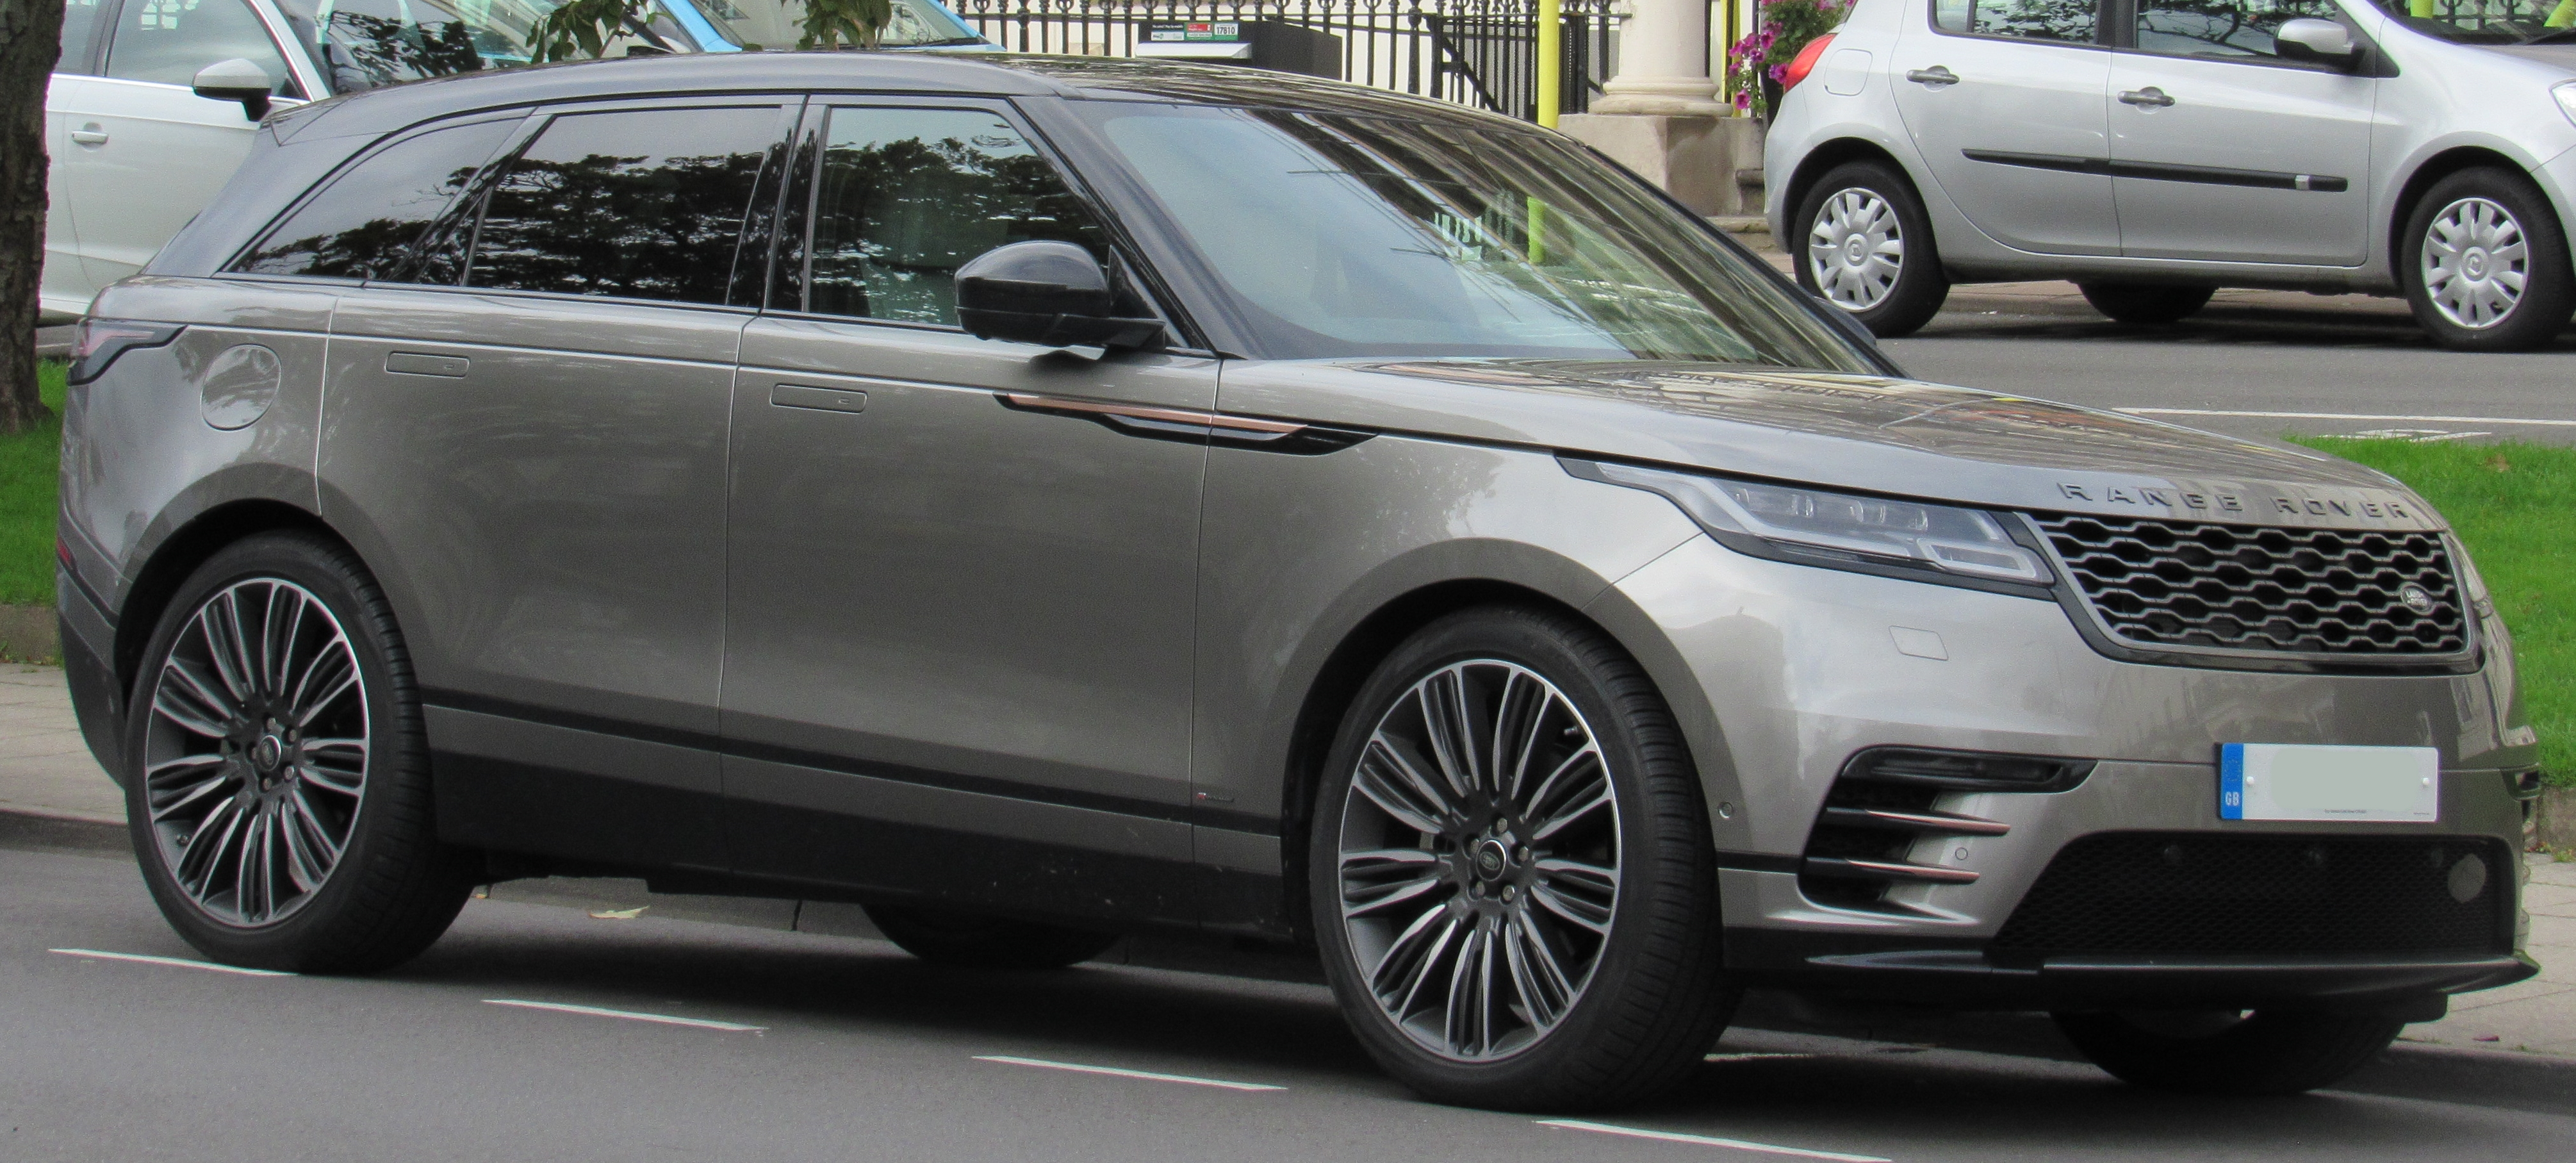 fichier 2017 land rover range rover velar first edition d3 3 0 wikip dia. Black Bedroom Furniture Sets. Home Design Ideas